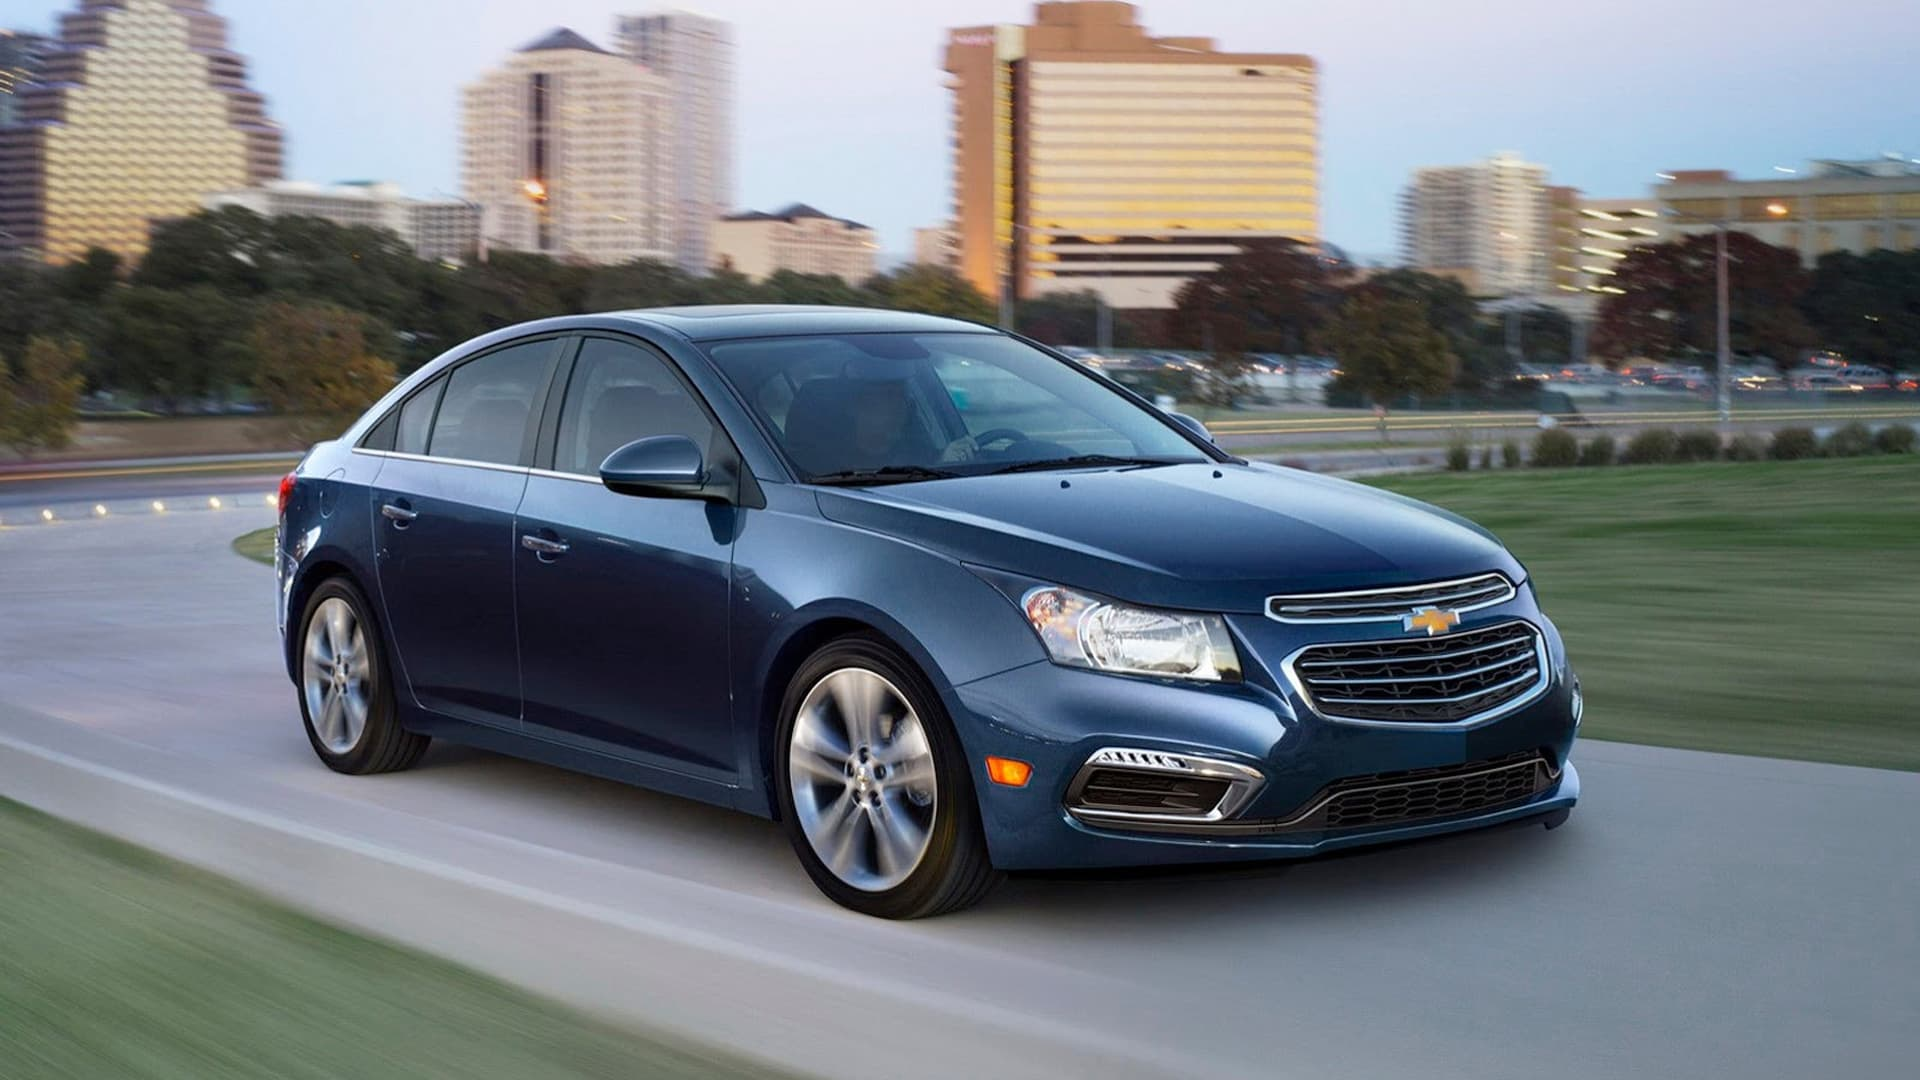 Cruze Car Hd Wallpaper 30 Chevrolet Cruze Wallpapers Hd High Quality Free Download